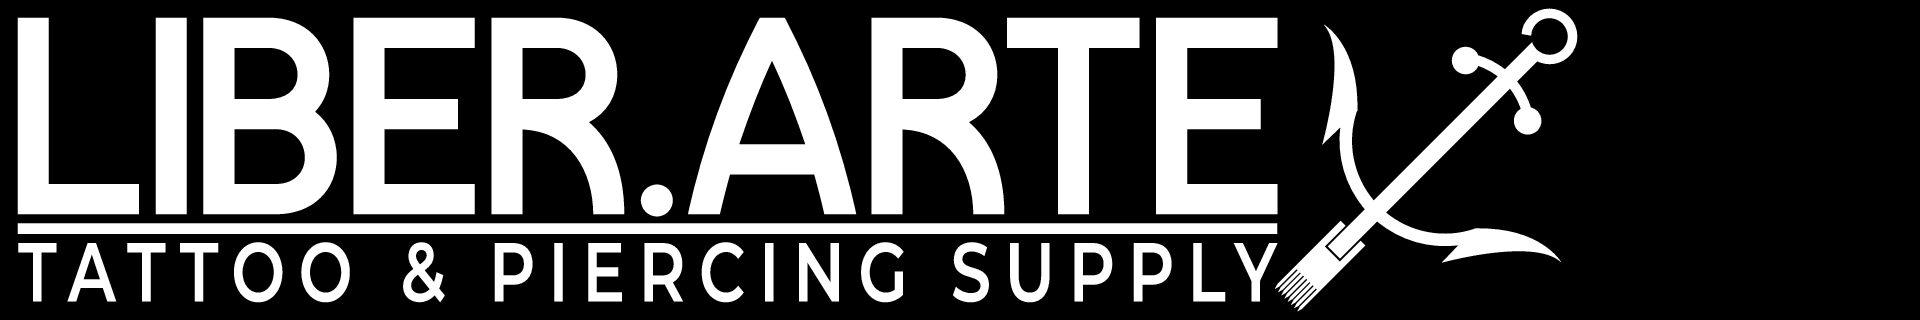 Liberarte Tattoo Supply